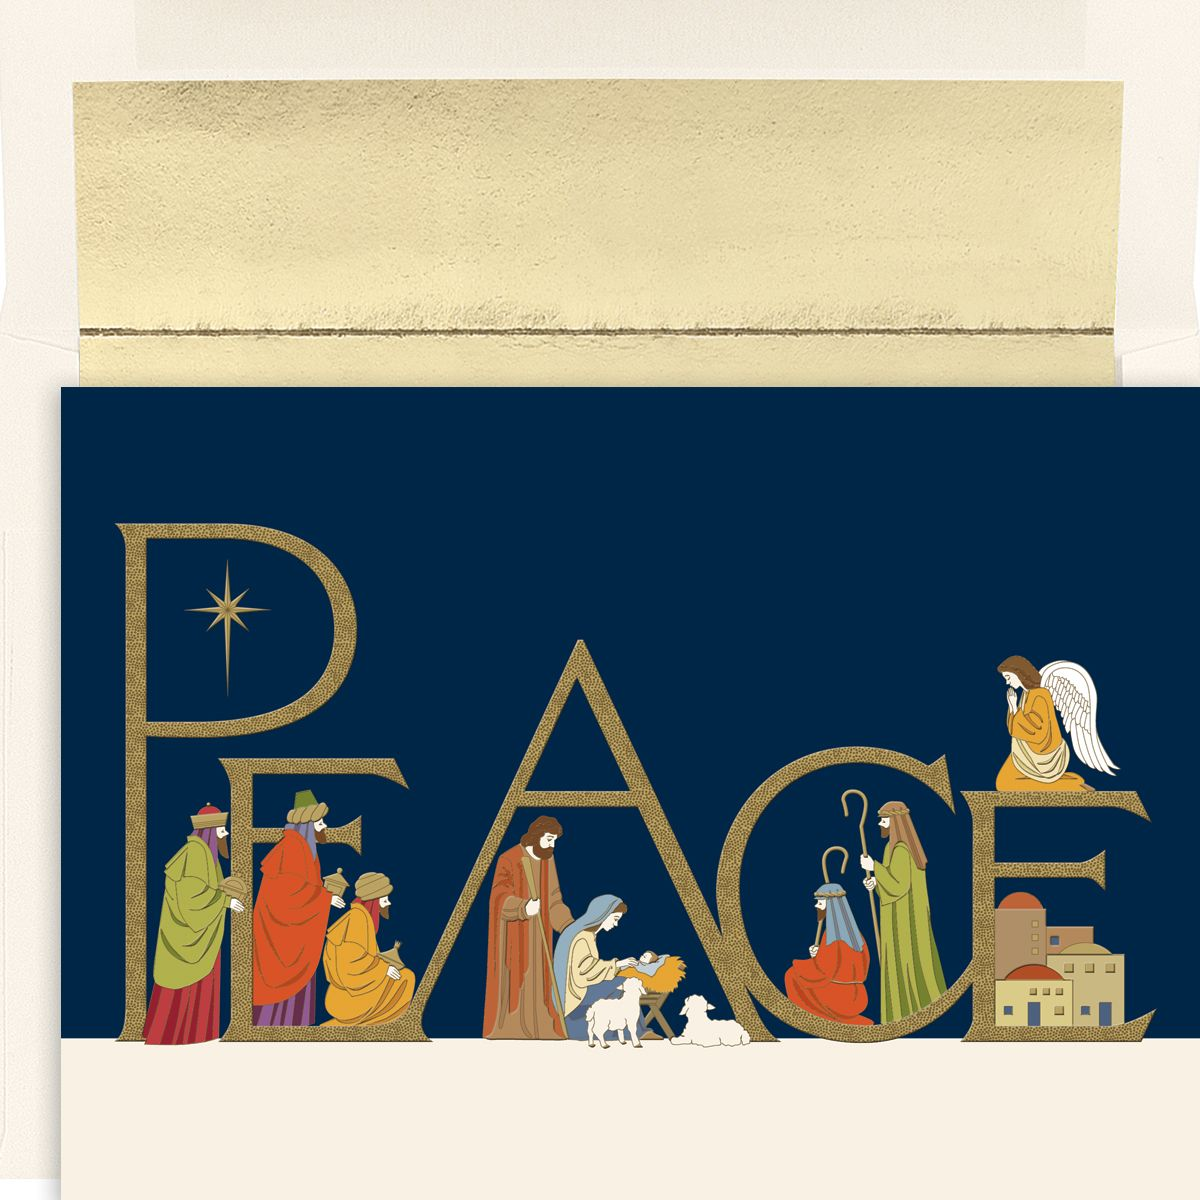 Pin on 2017 Religious Christmas Cards